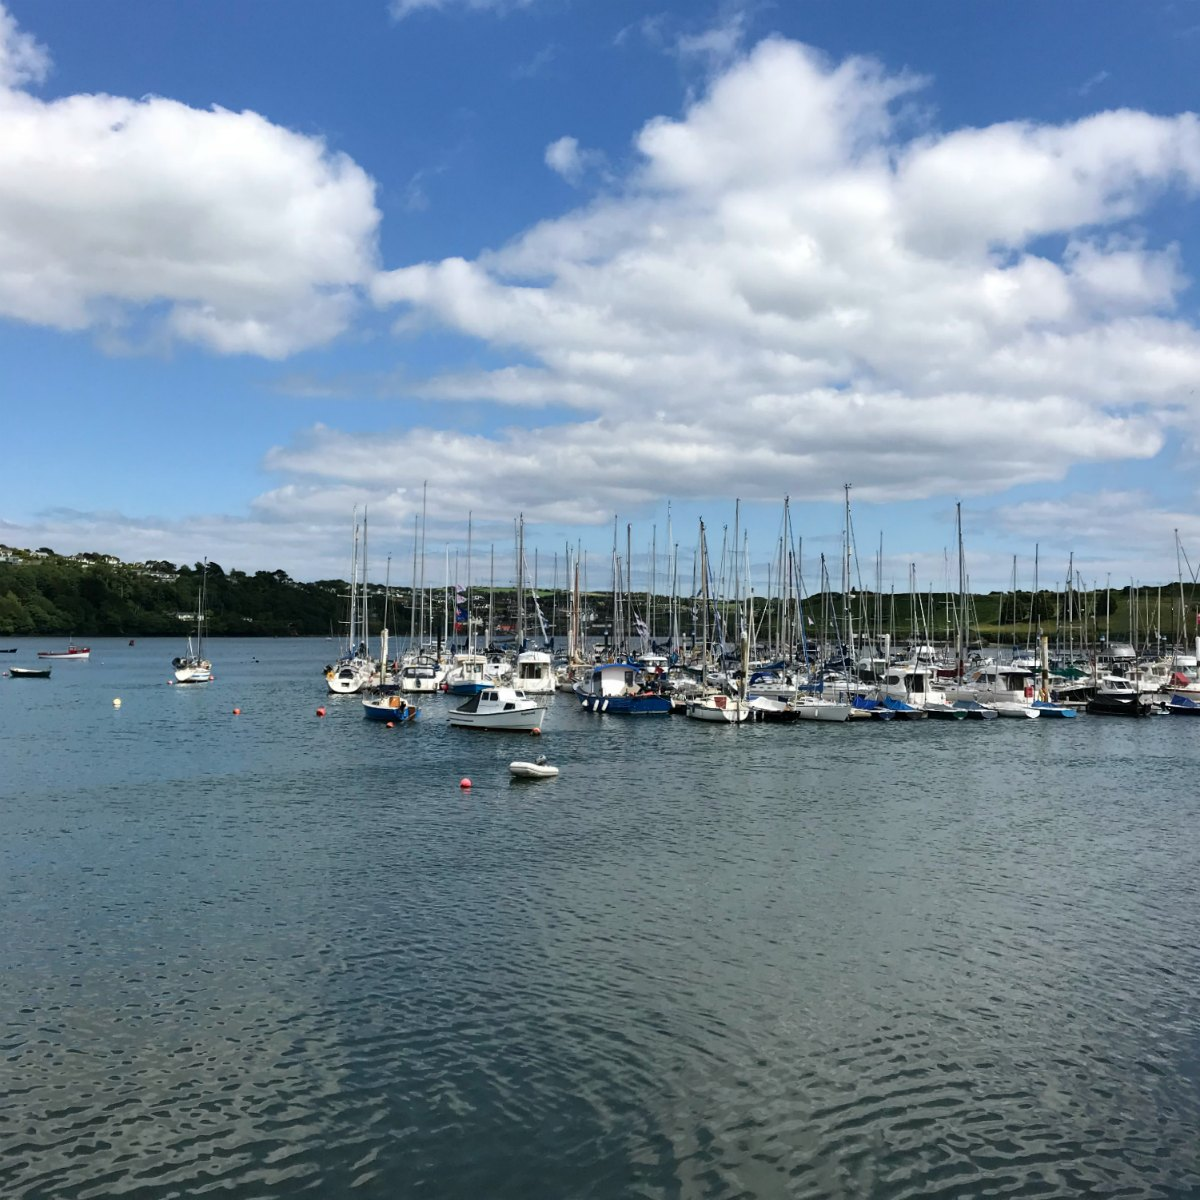 Snaphots from Ireland - Kinsale 3